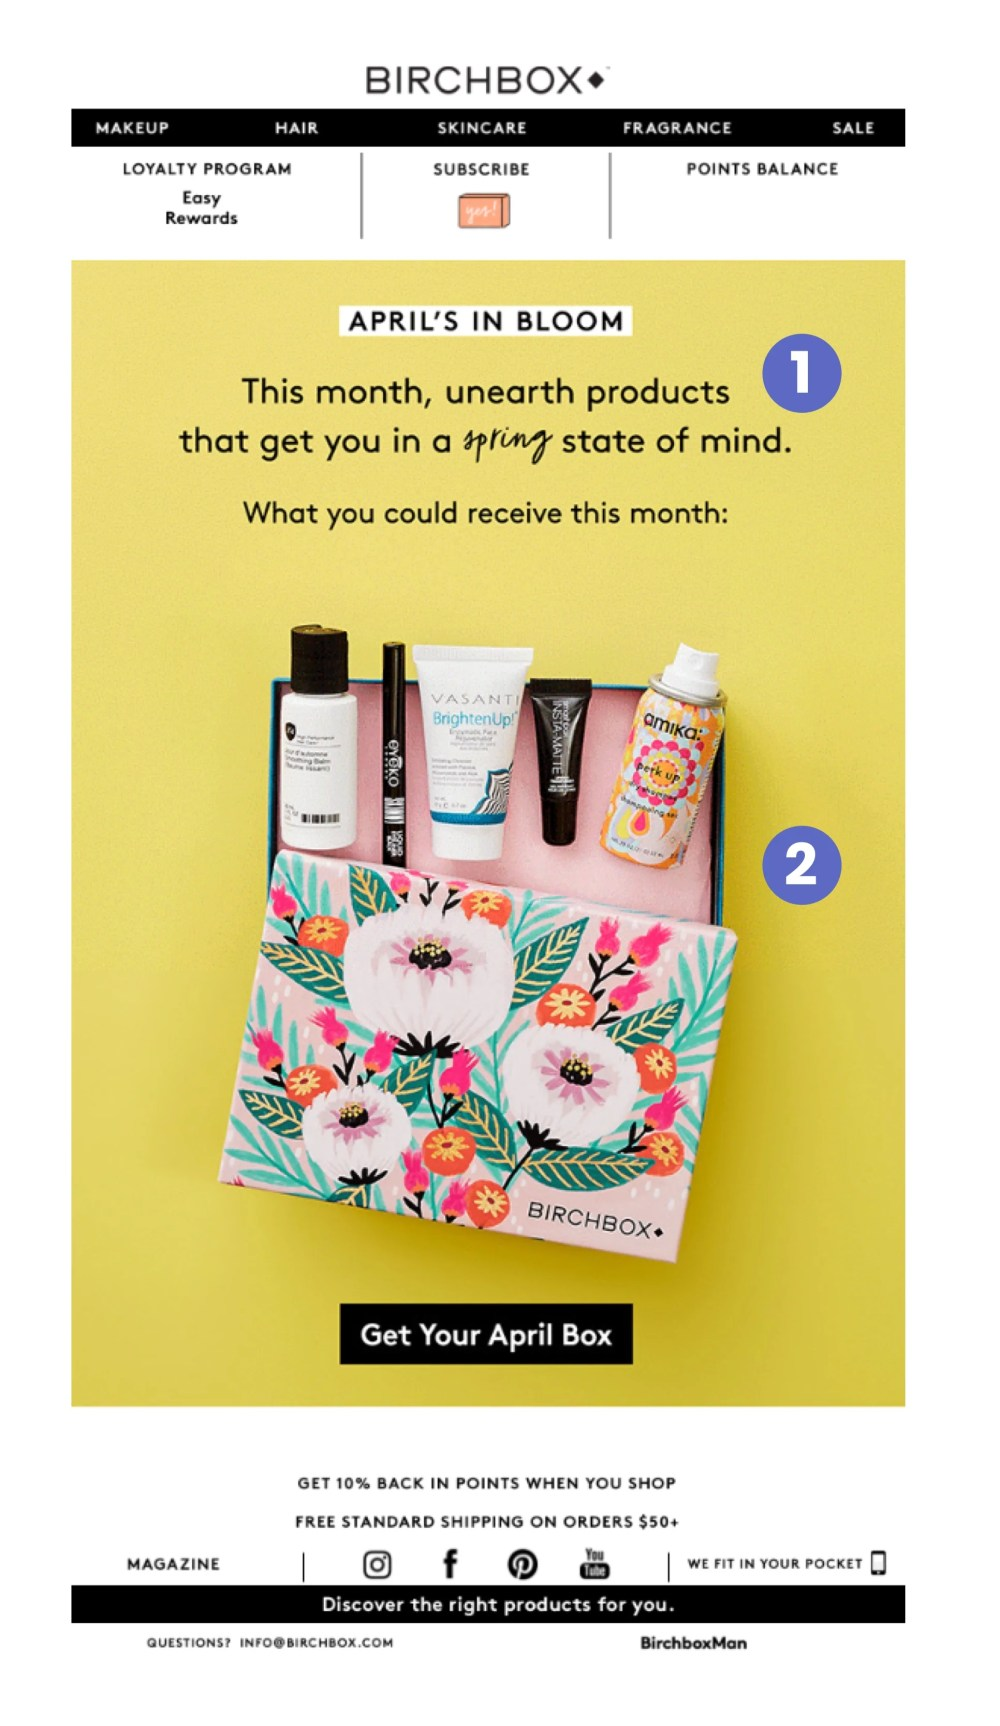 An ecommerce email marketing example from Birchbox